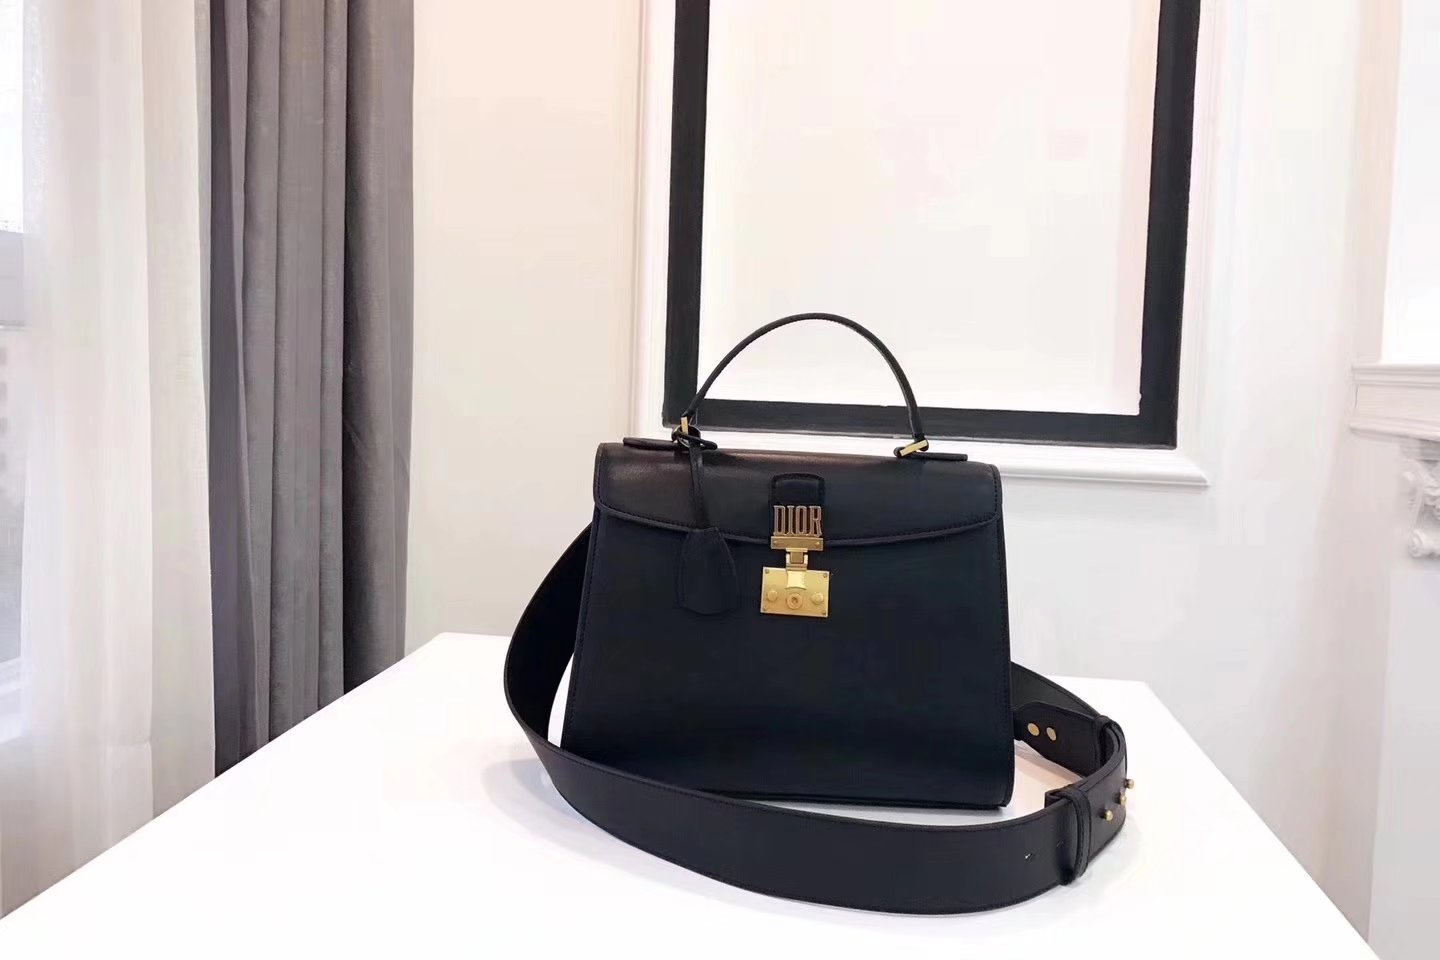 Dior Dioraddict Handbag in Black Grained Calfskin